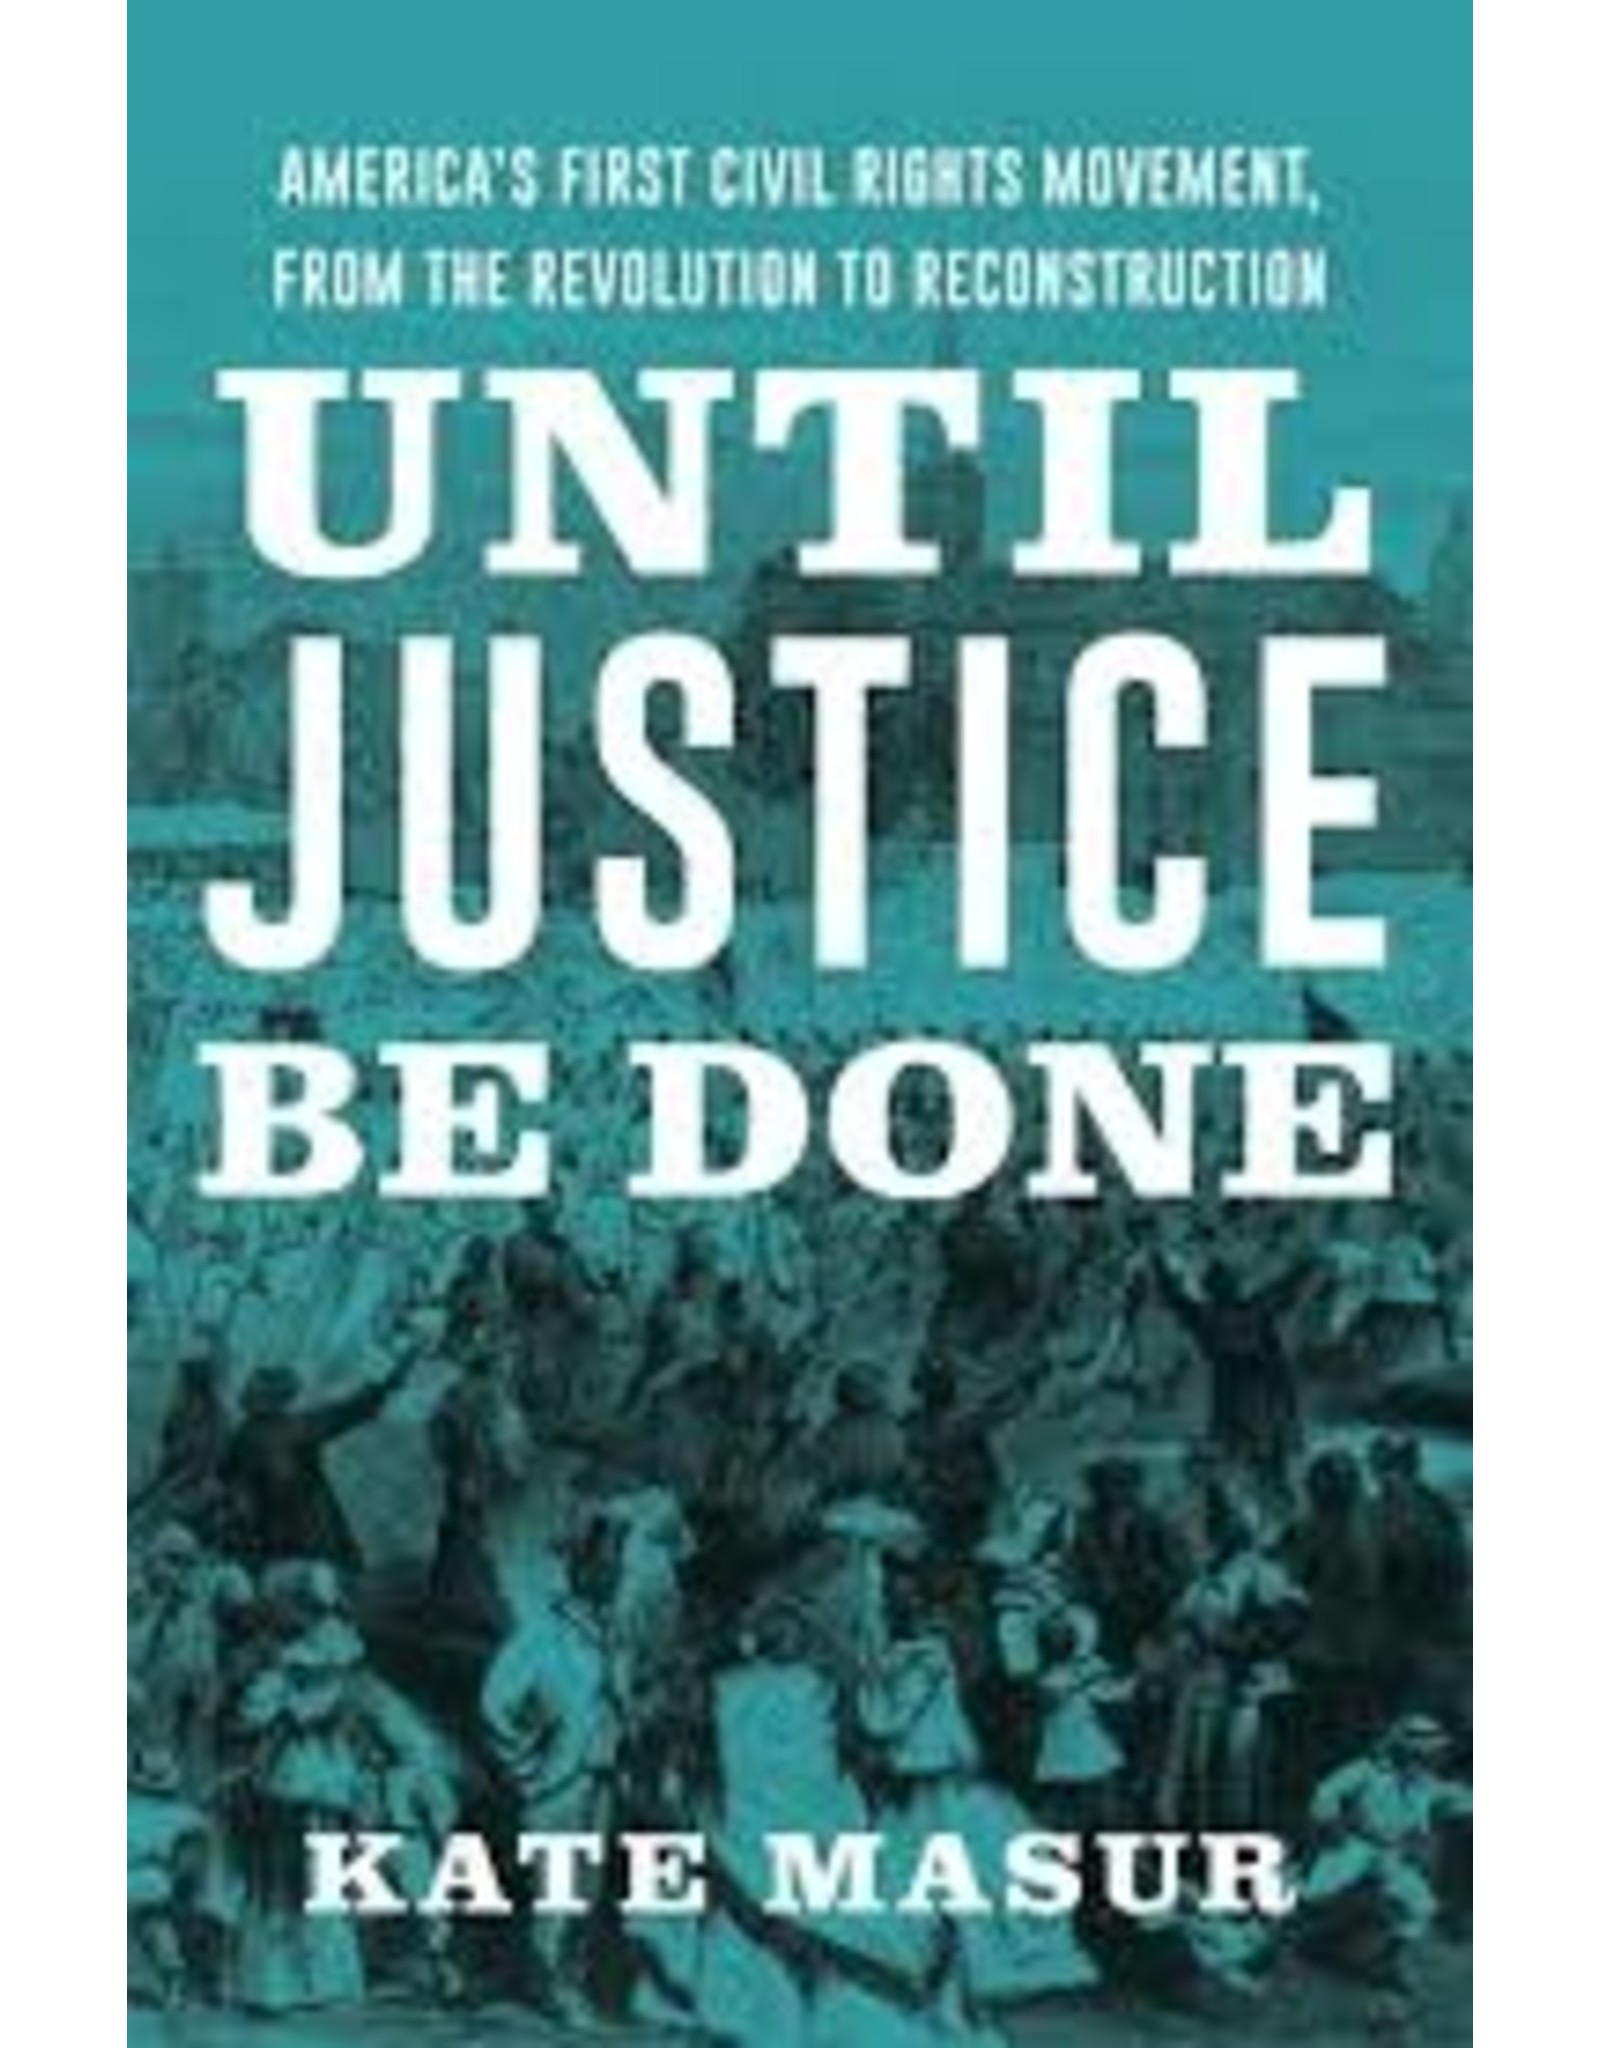 Books Until Justice Be Done: America's First Civil Rights Movement, From the Revolution to Reconstruction by Kate Masur